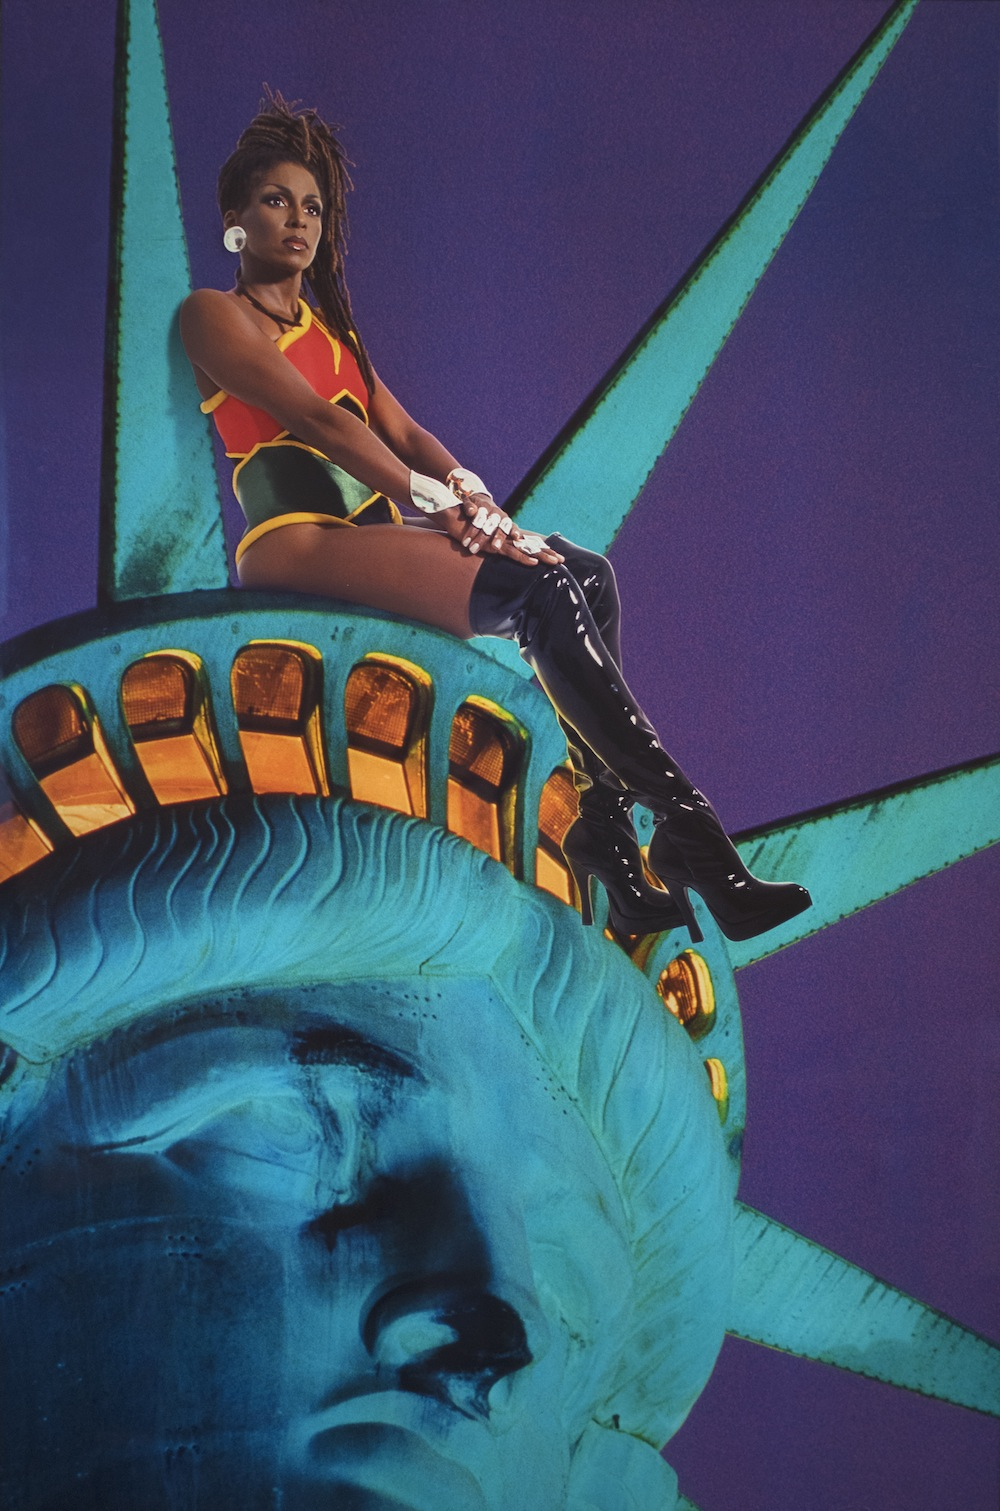 Renee Cox, Chillin with Liberty